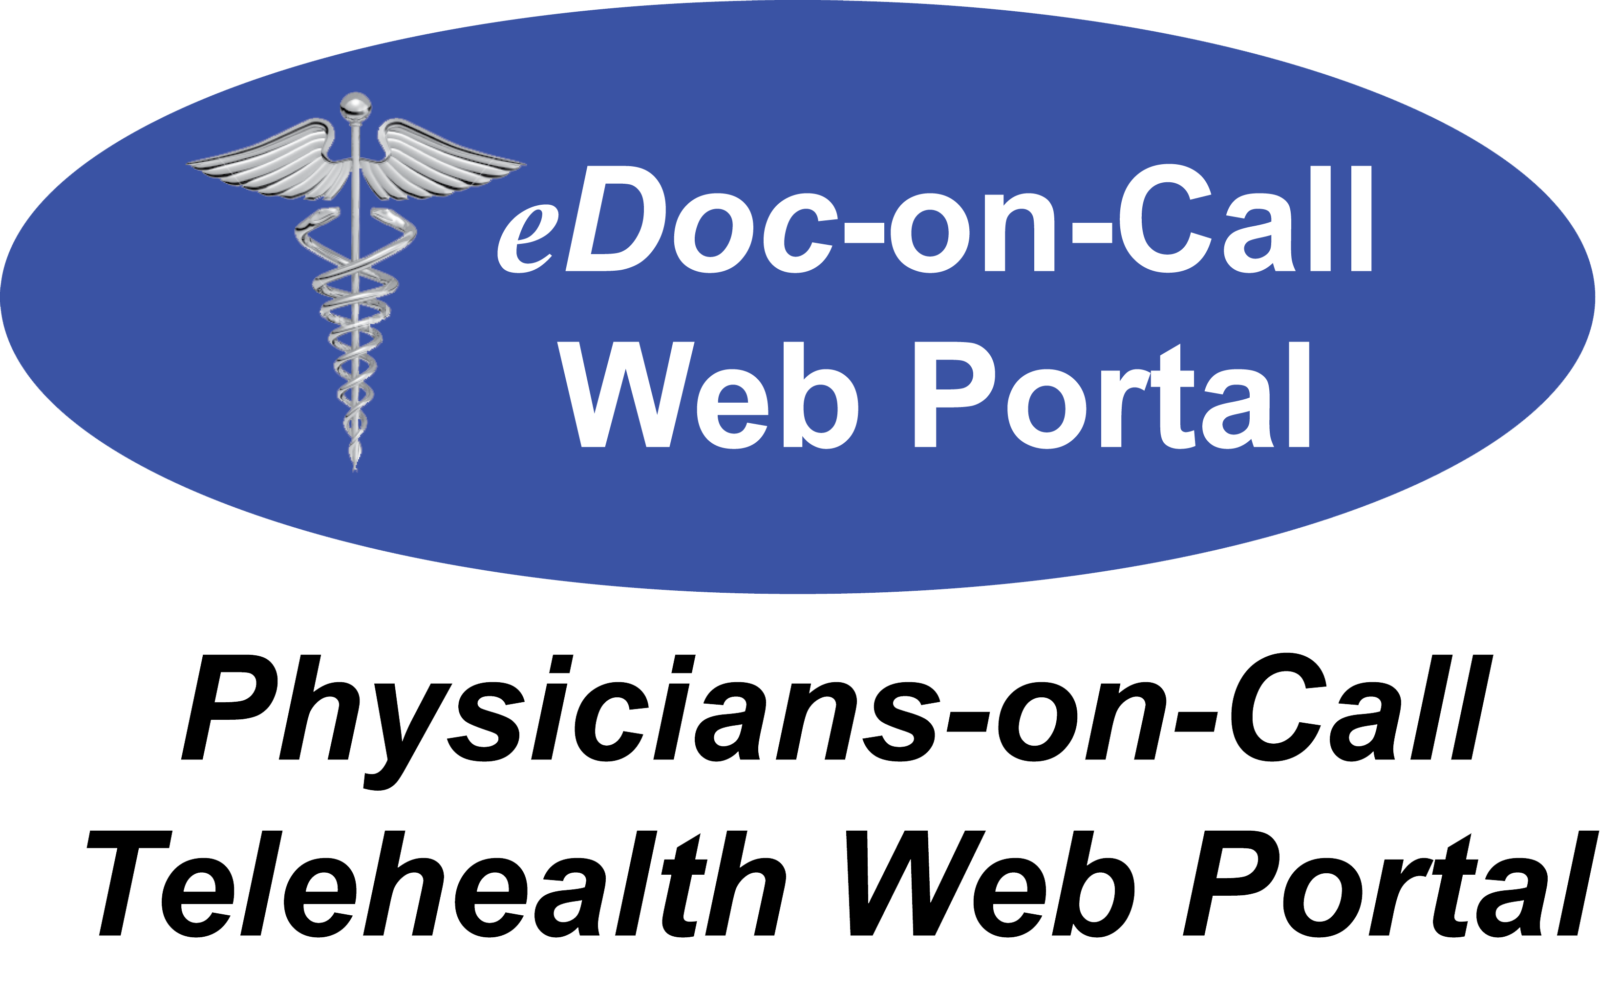 eDoc-on-Call web portal